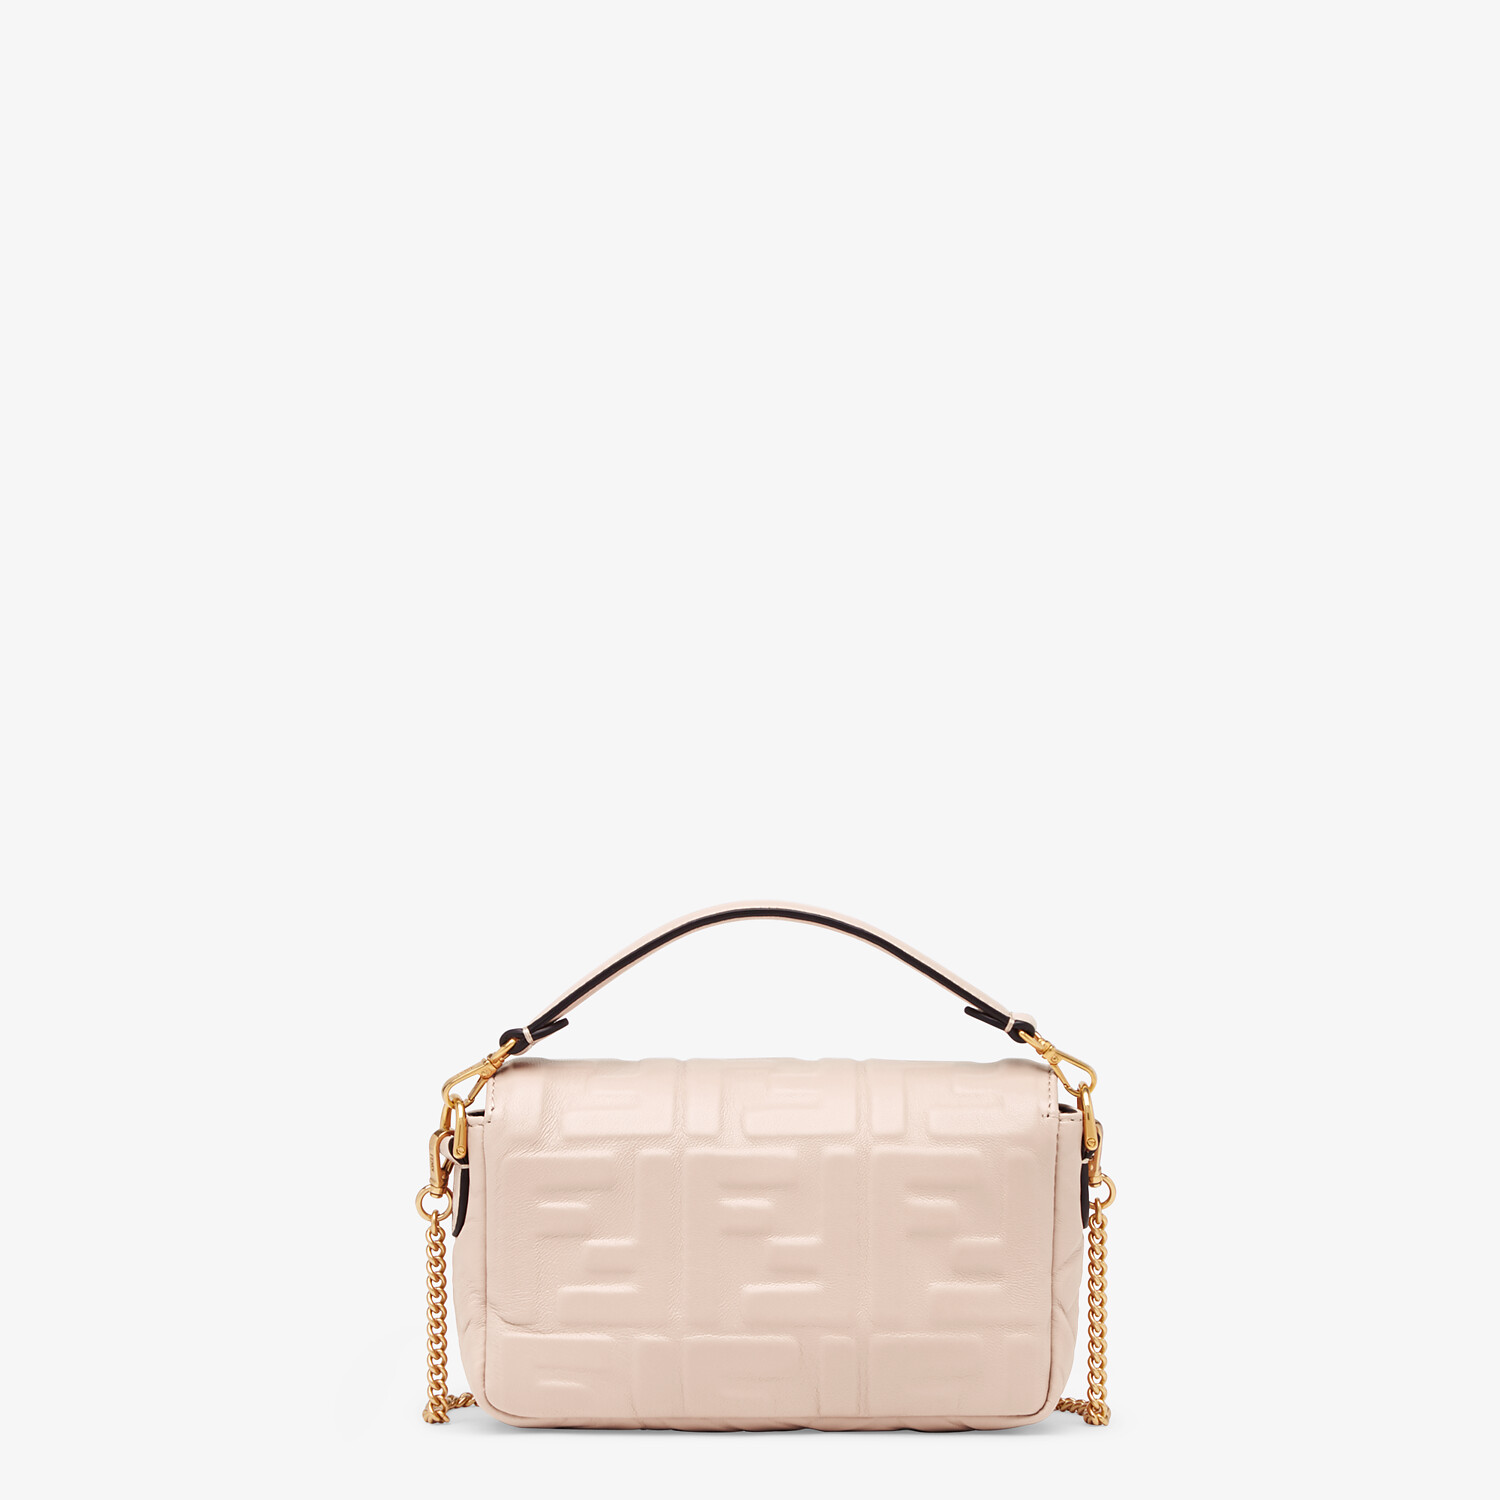 FENDI BAGUETTE - Pink nappa leather FF bag - view 3 detail